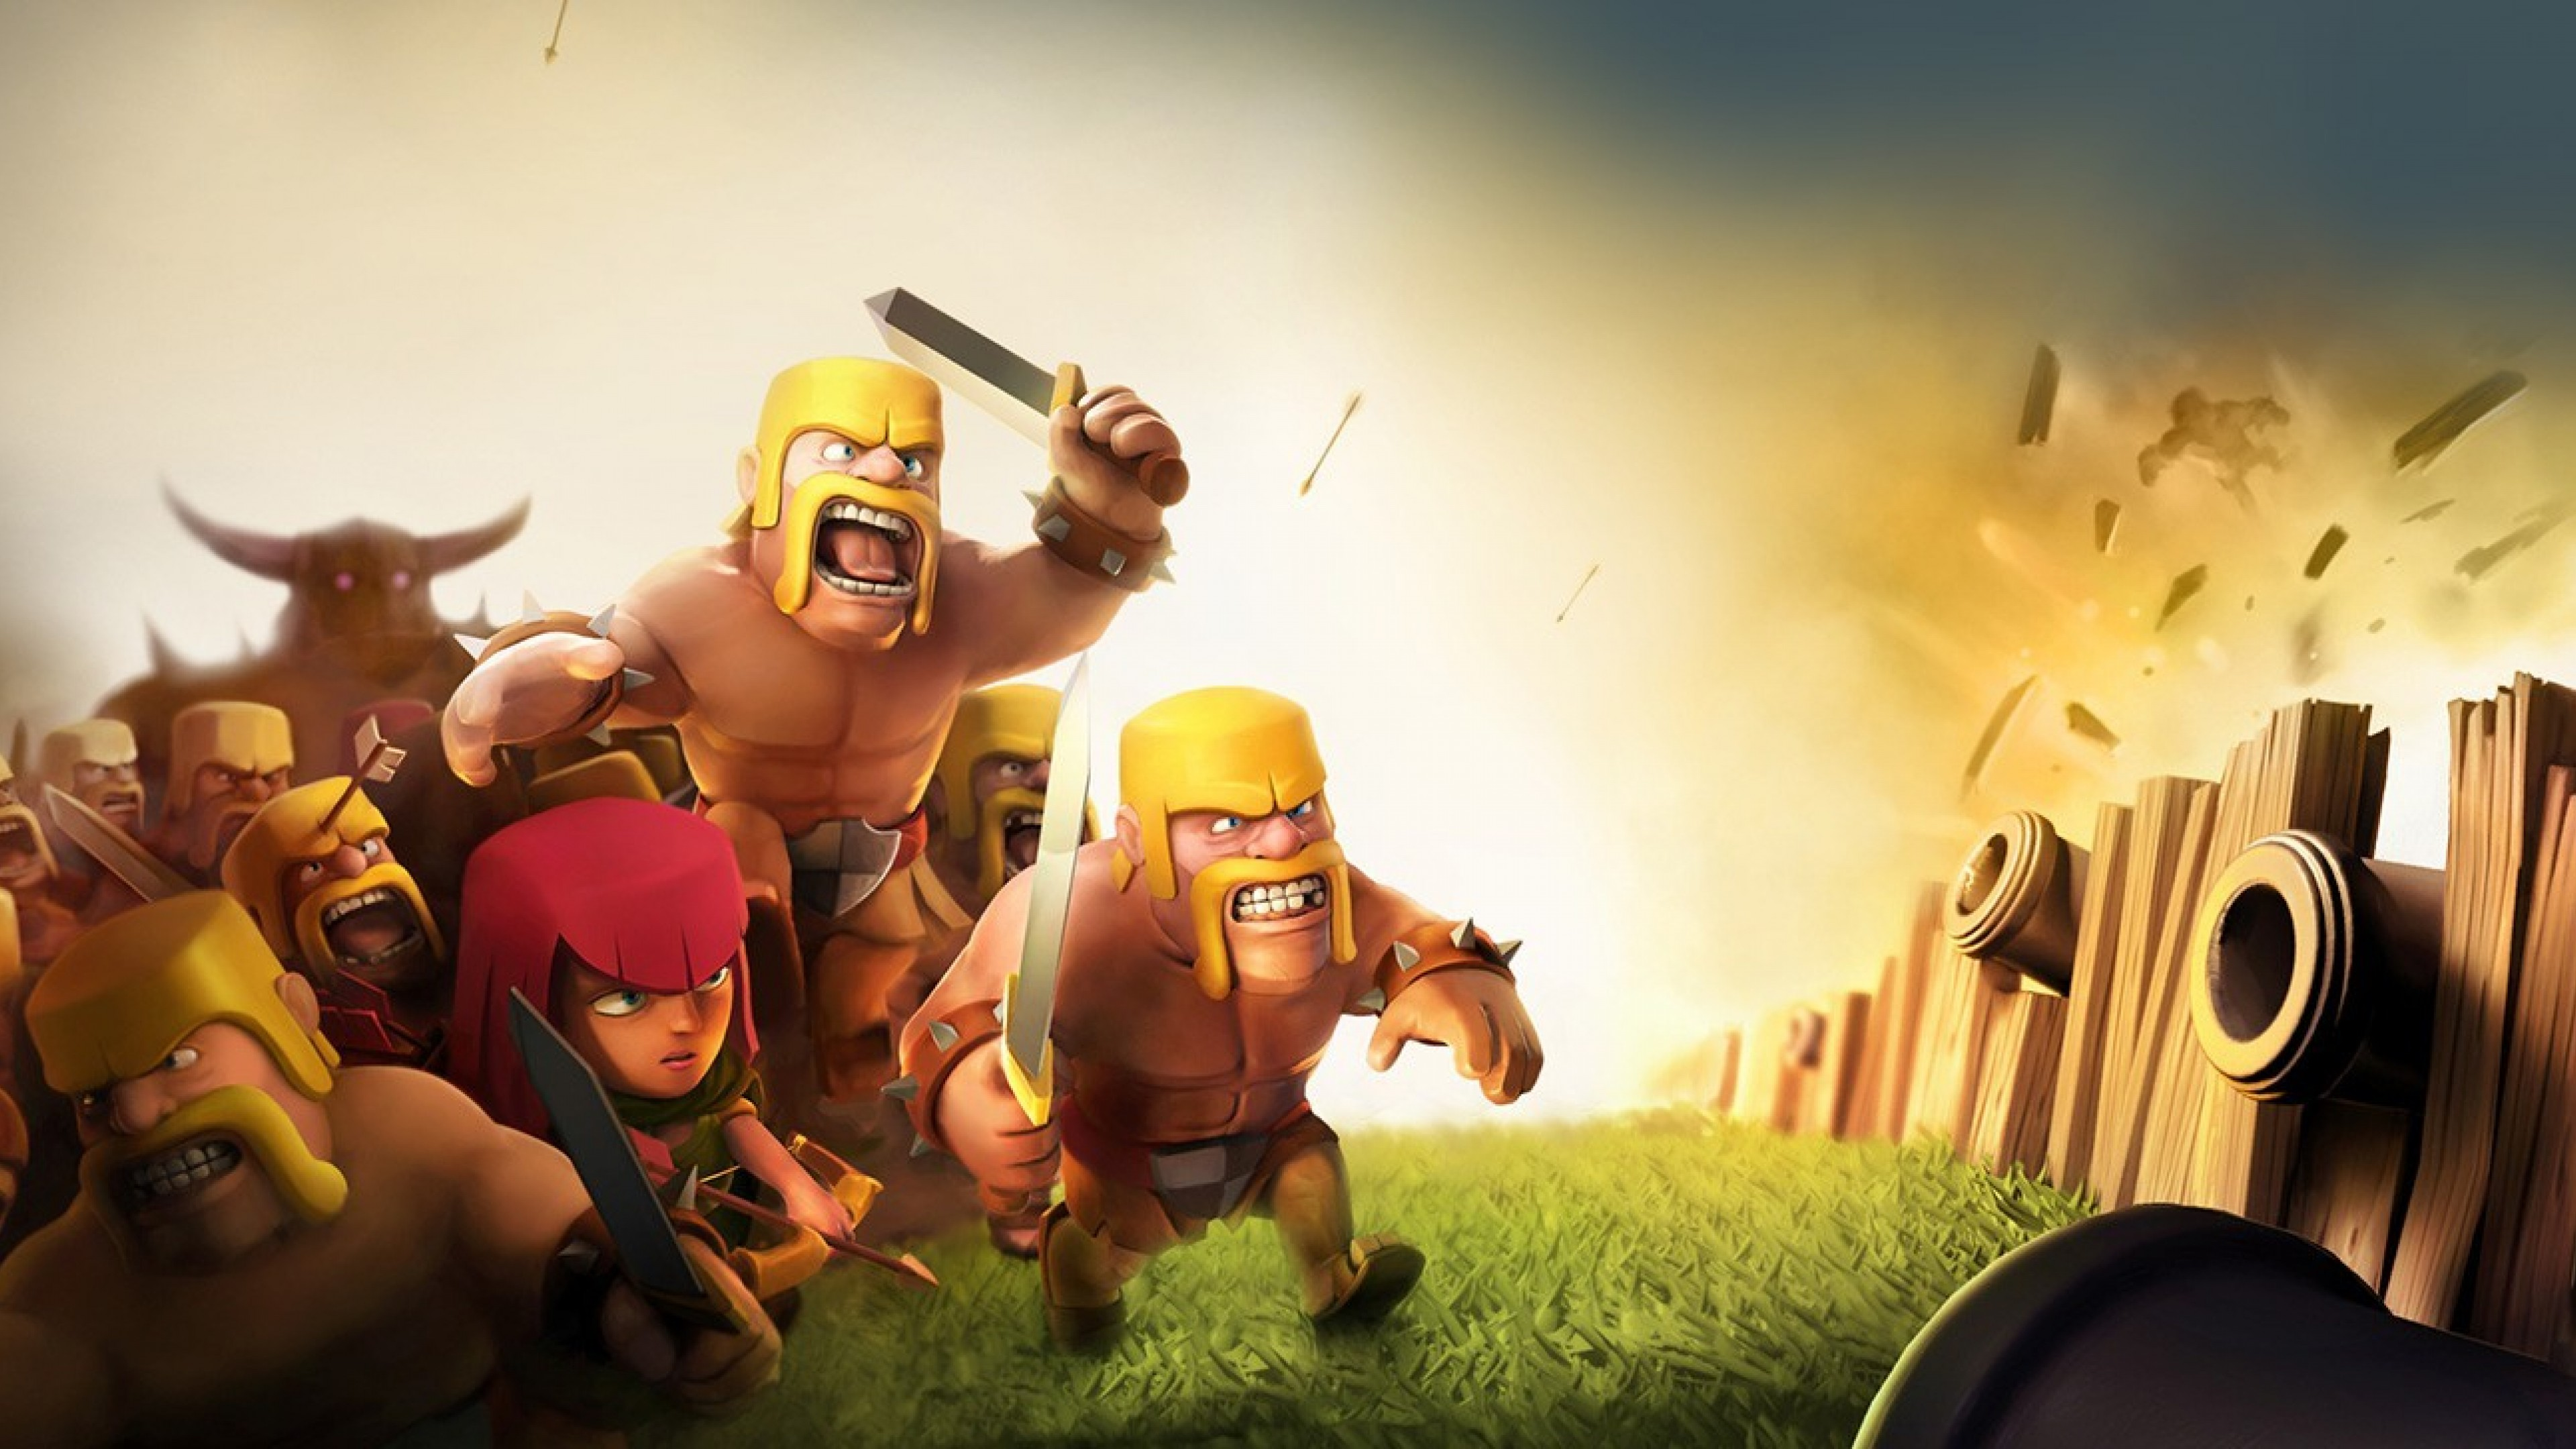 Clash Of Clans Coc Wizard 3d Wallpaper For Desktop And Mobiles 4k